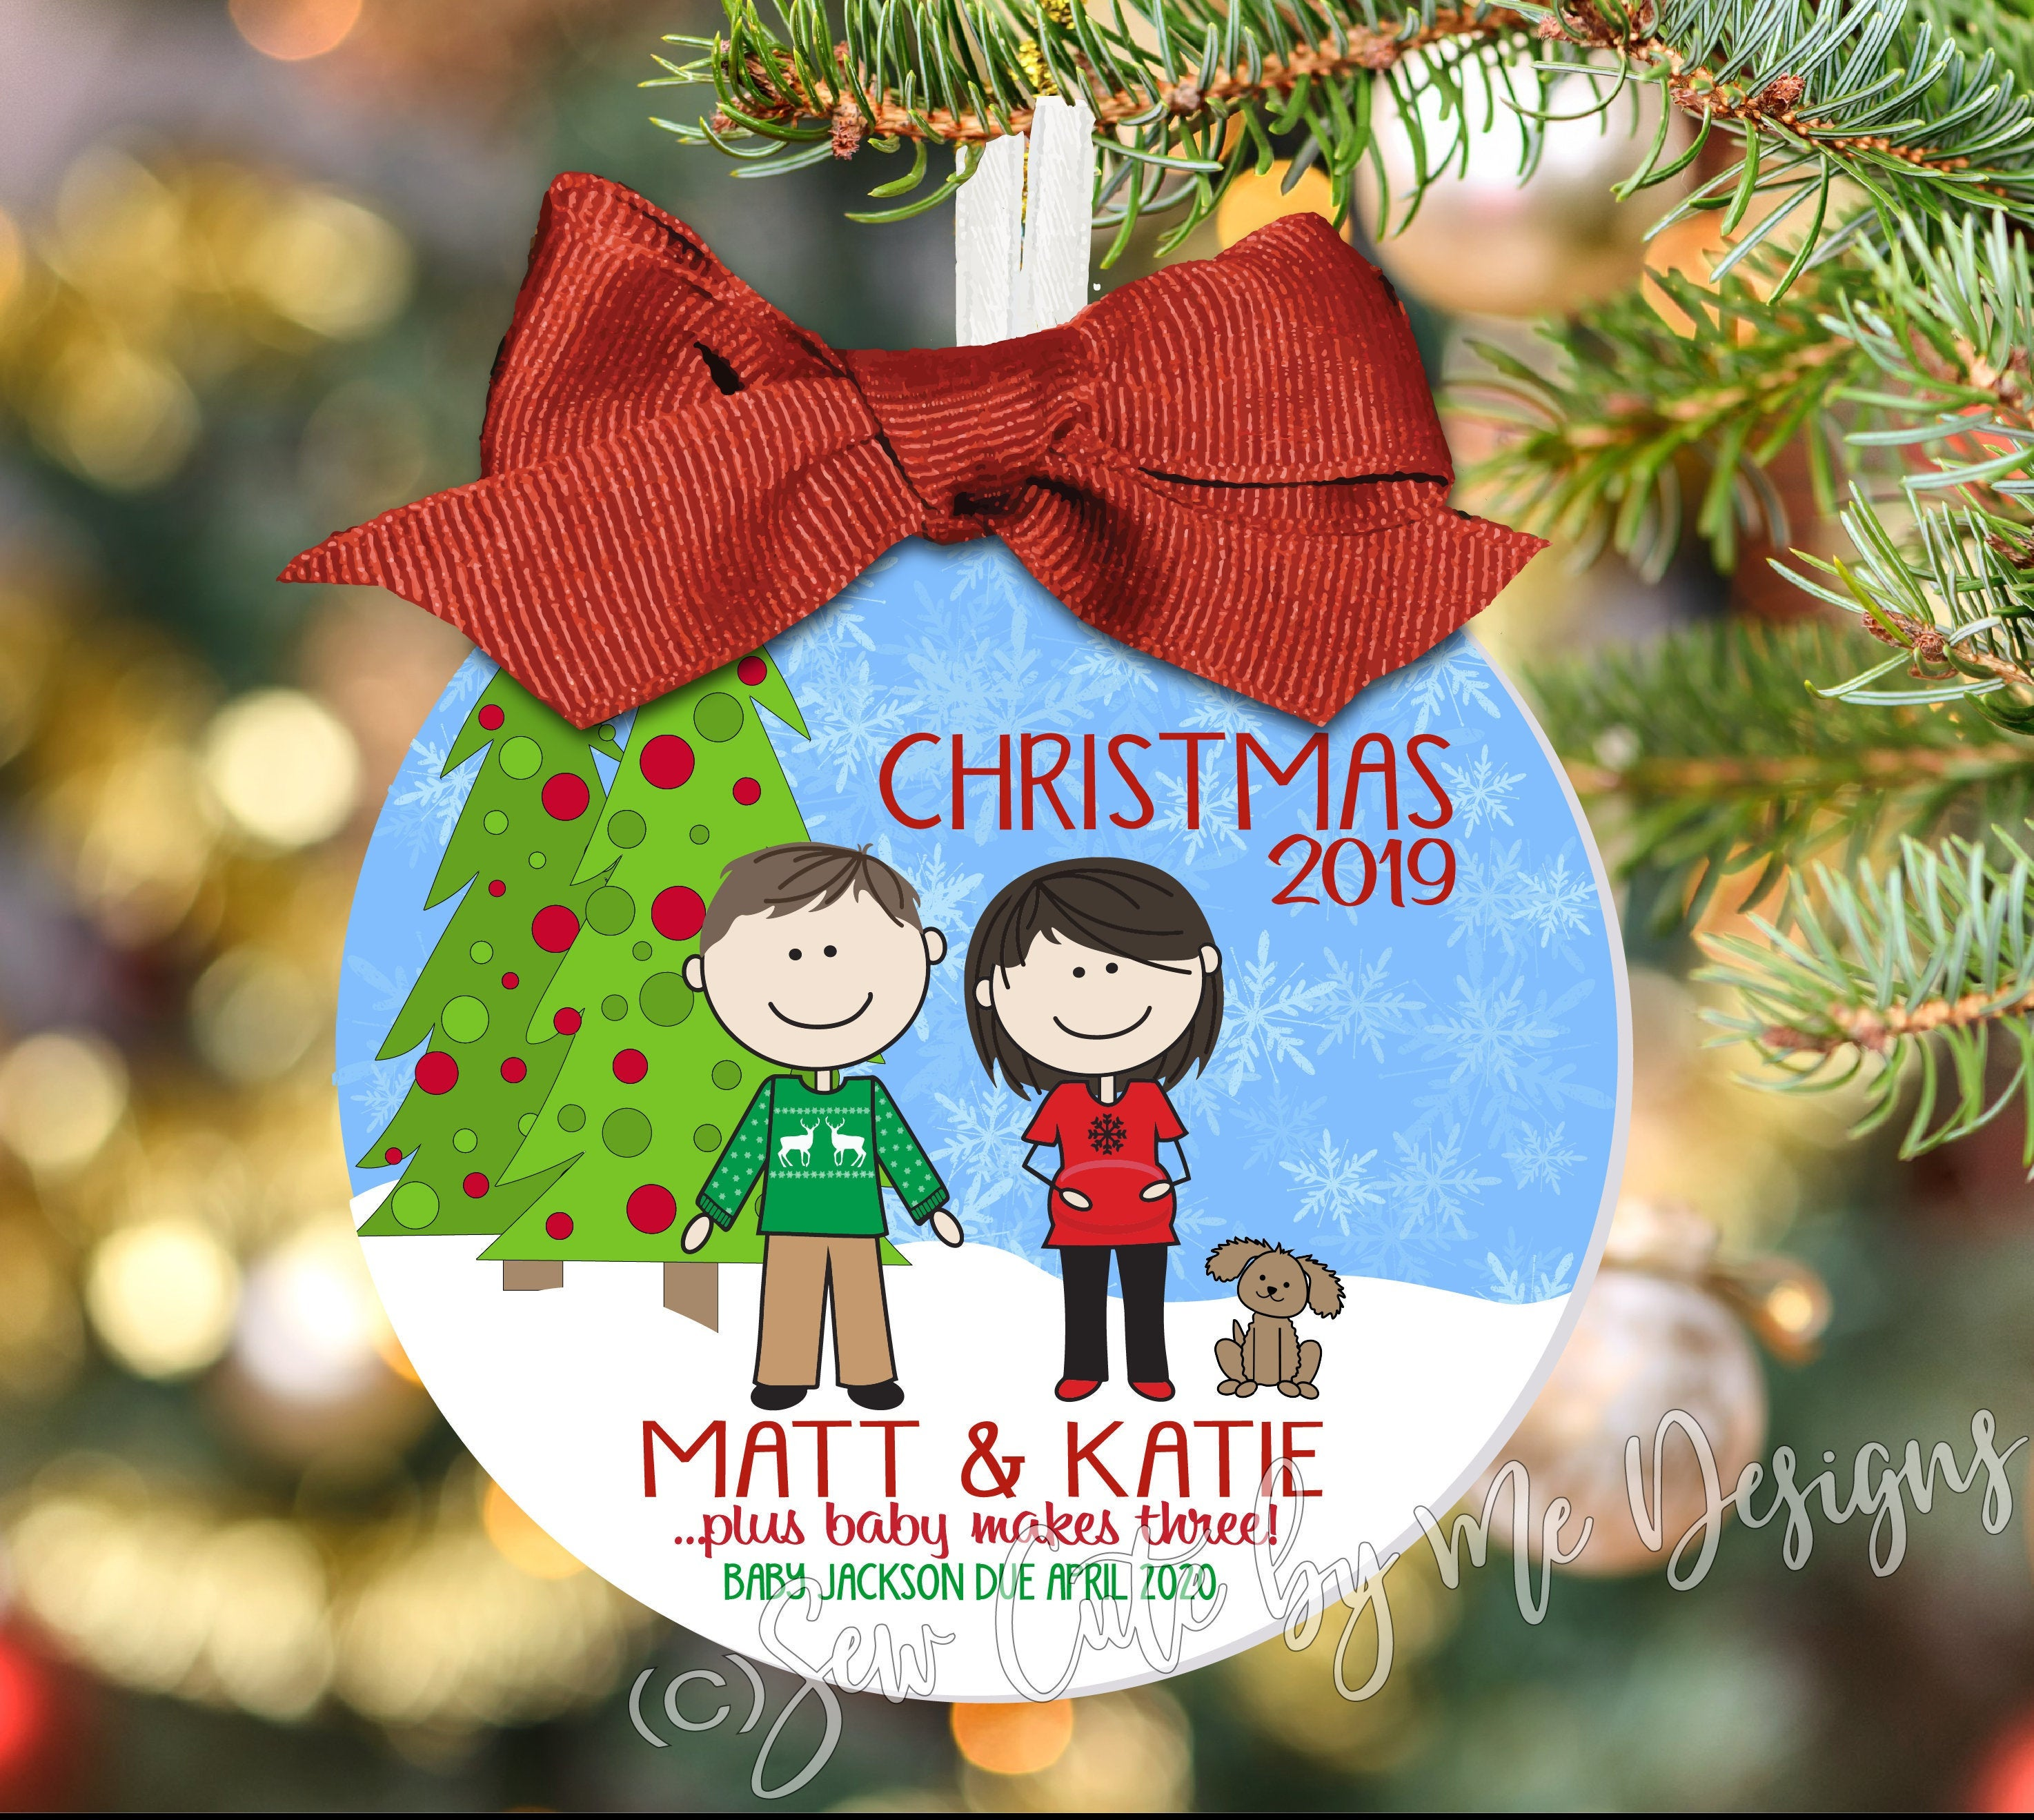 Expecting Christmas Ornaments.We Re Expecting Family Portrait Christmas Ornament Personalized With Characters Names And Year